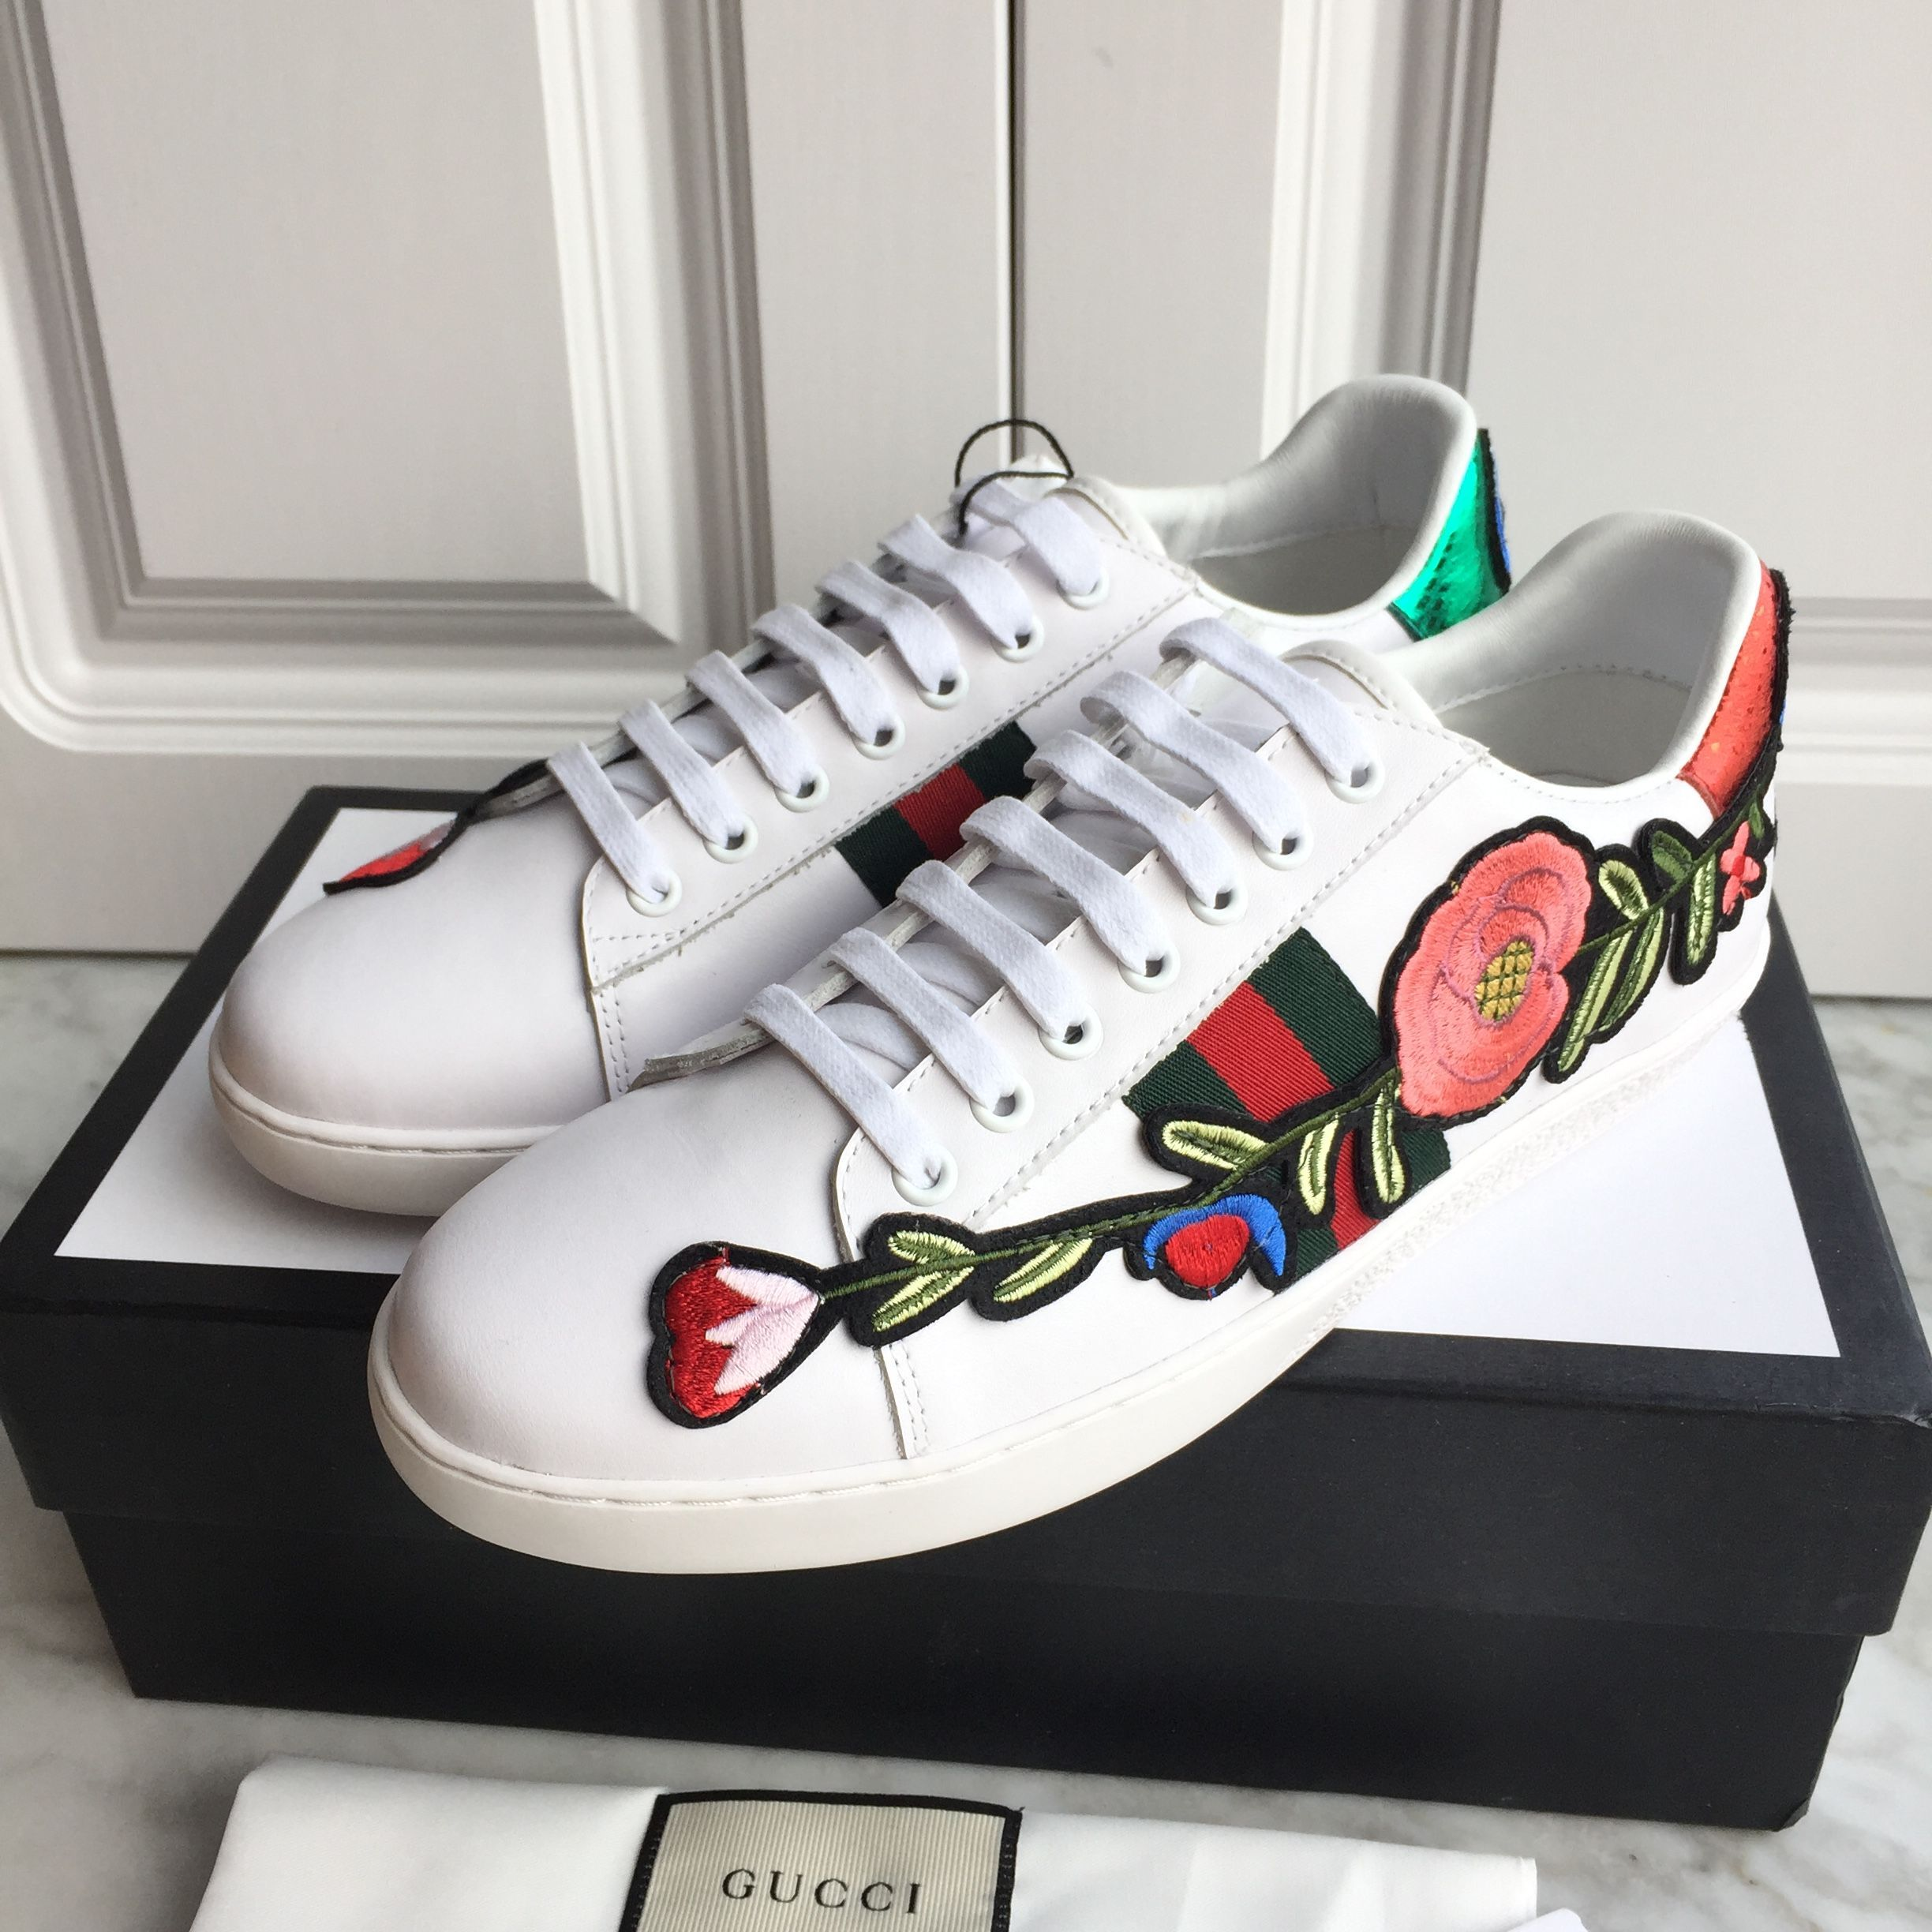 Gucci unisex woman man white shoes leather sneakers embroidered flower  design 42e4576a9